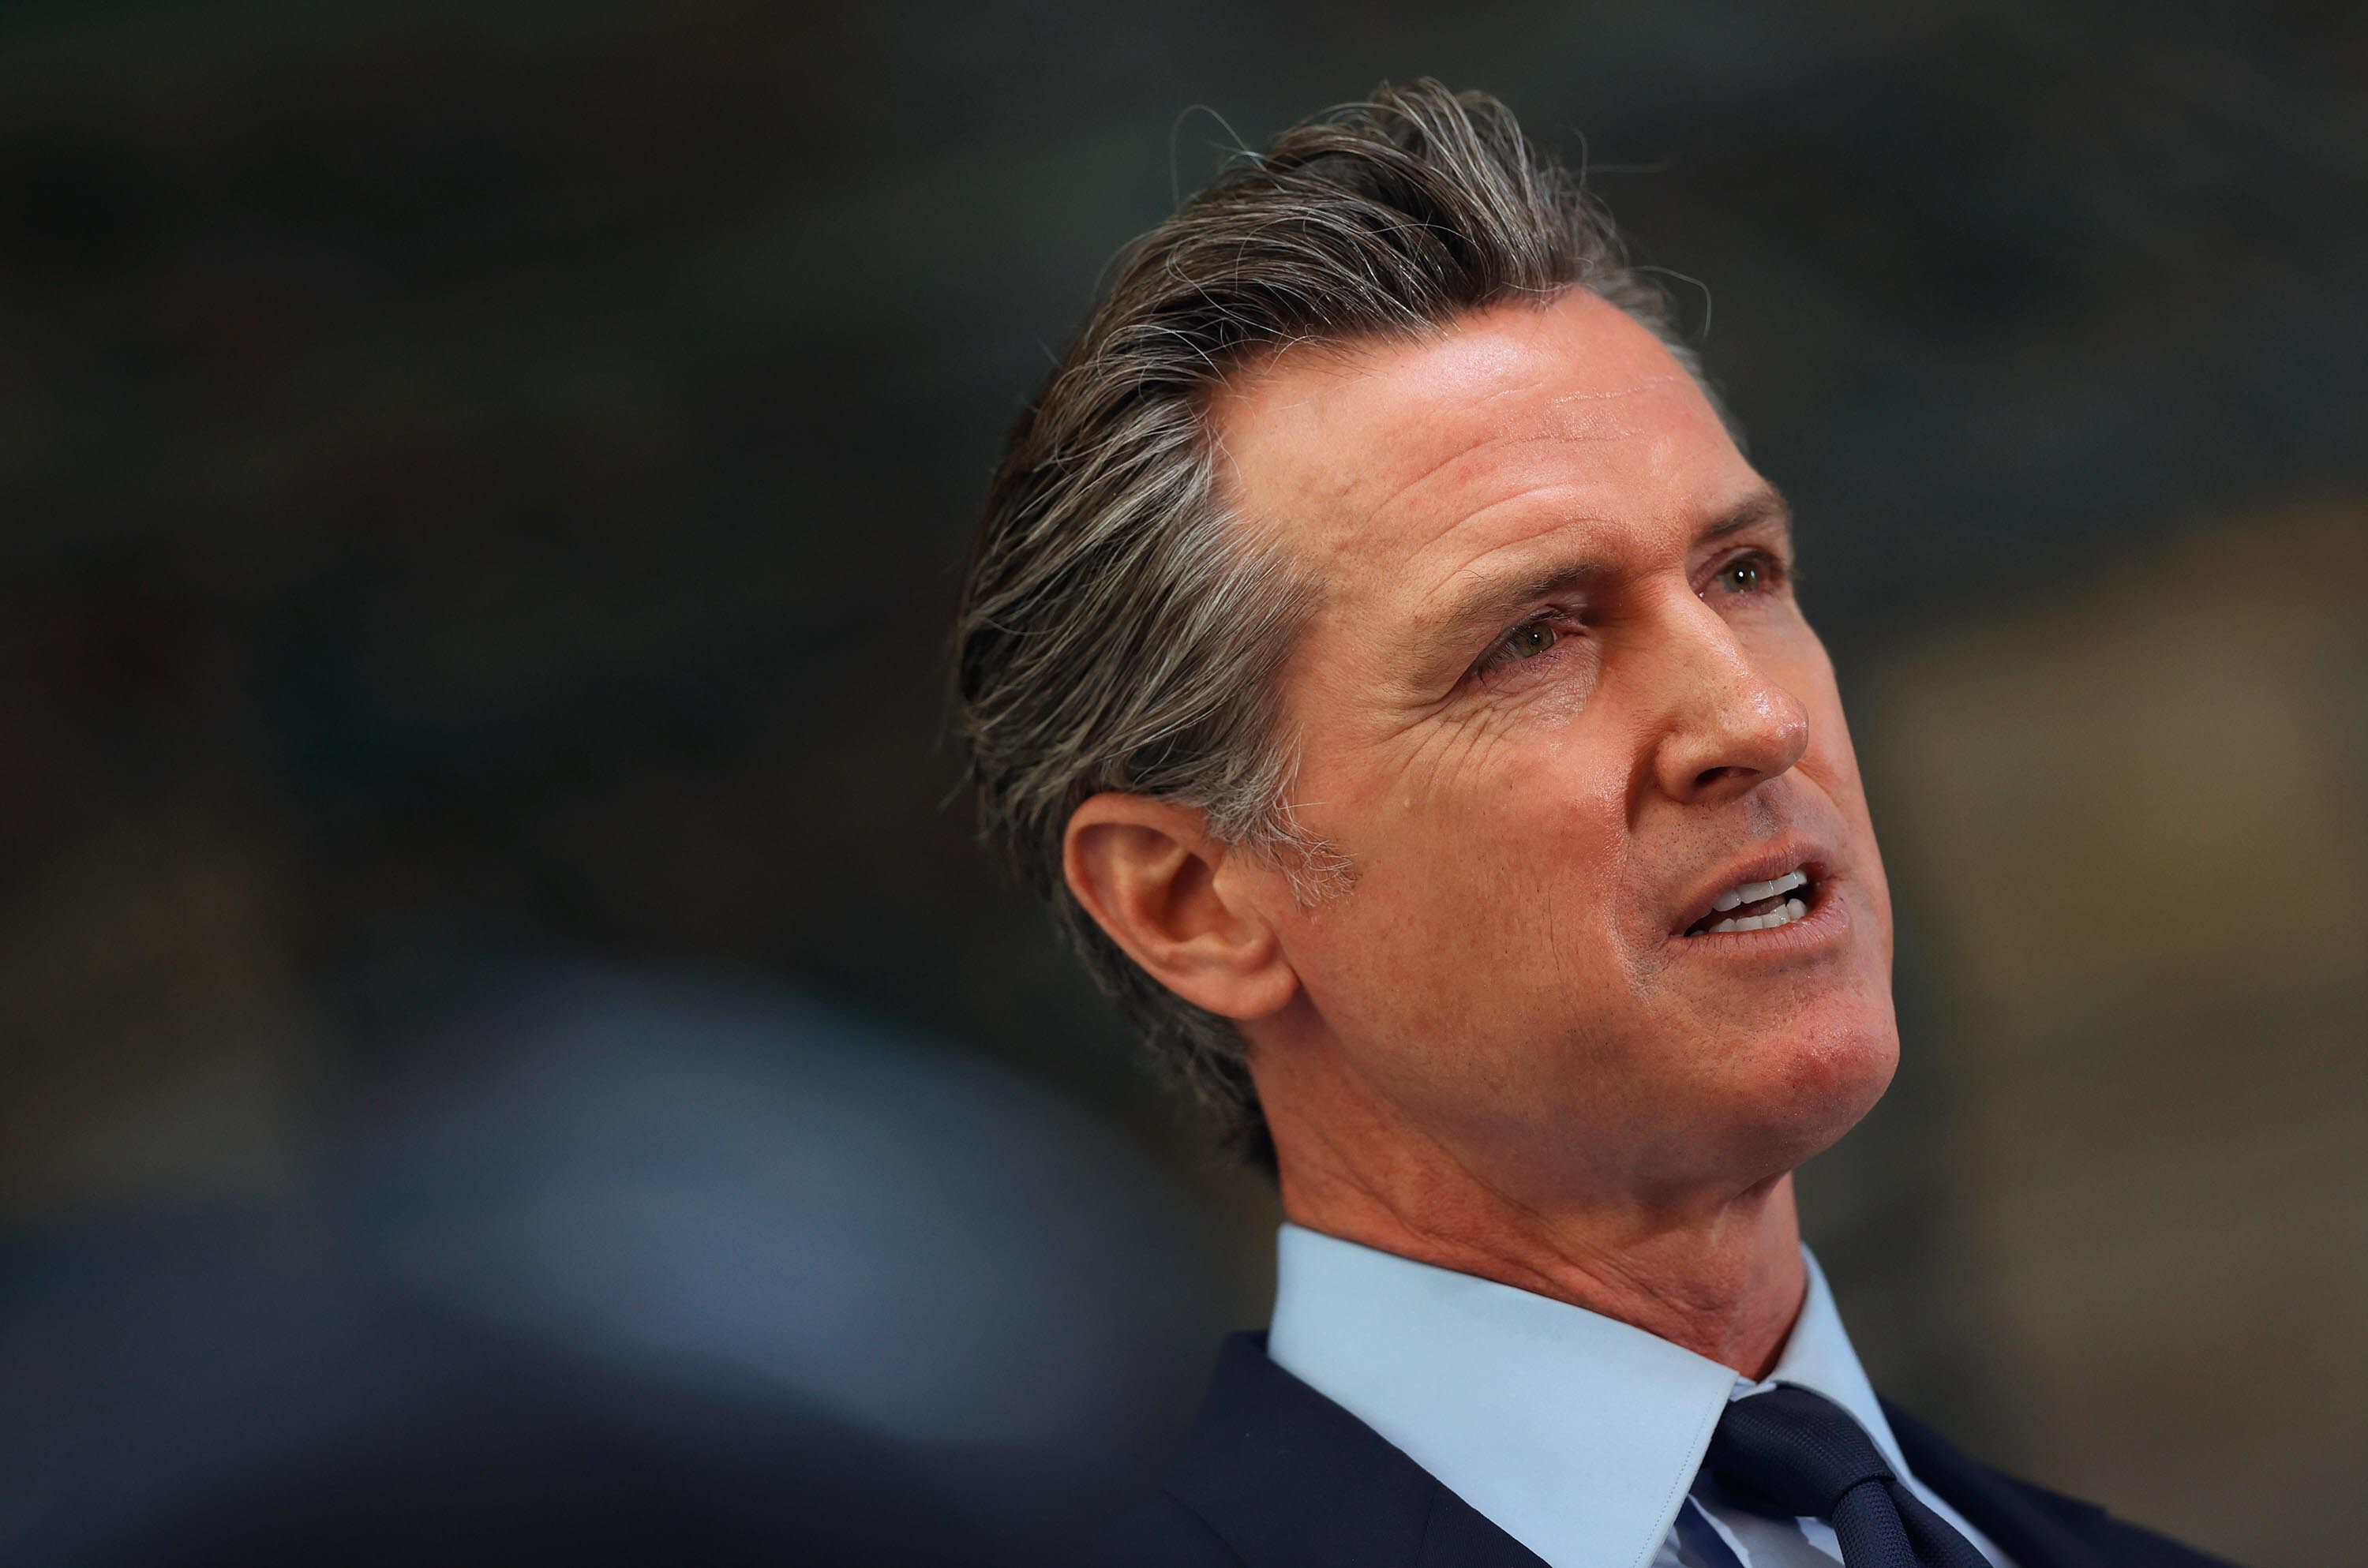 California Gov. Newsom faces a wall of apathy as Republicans mobilize recall voters